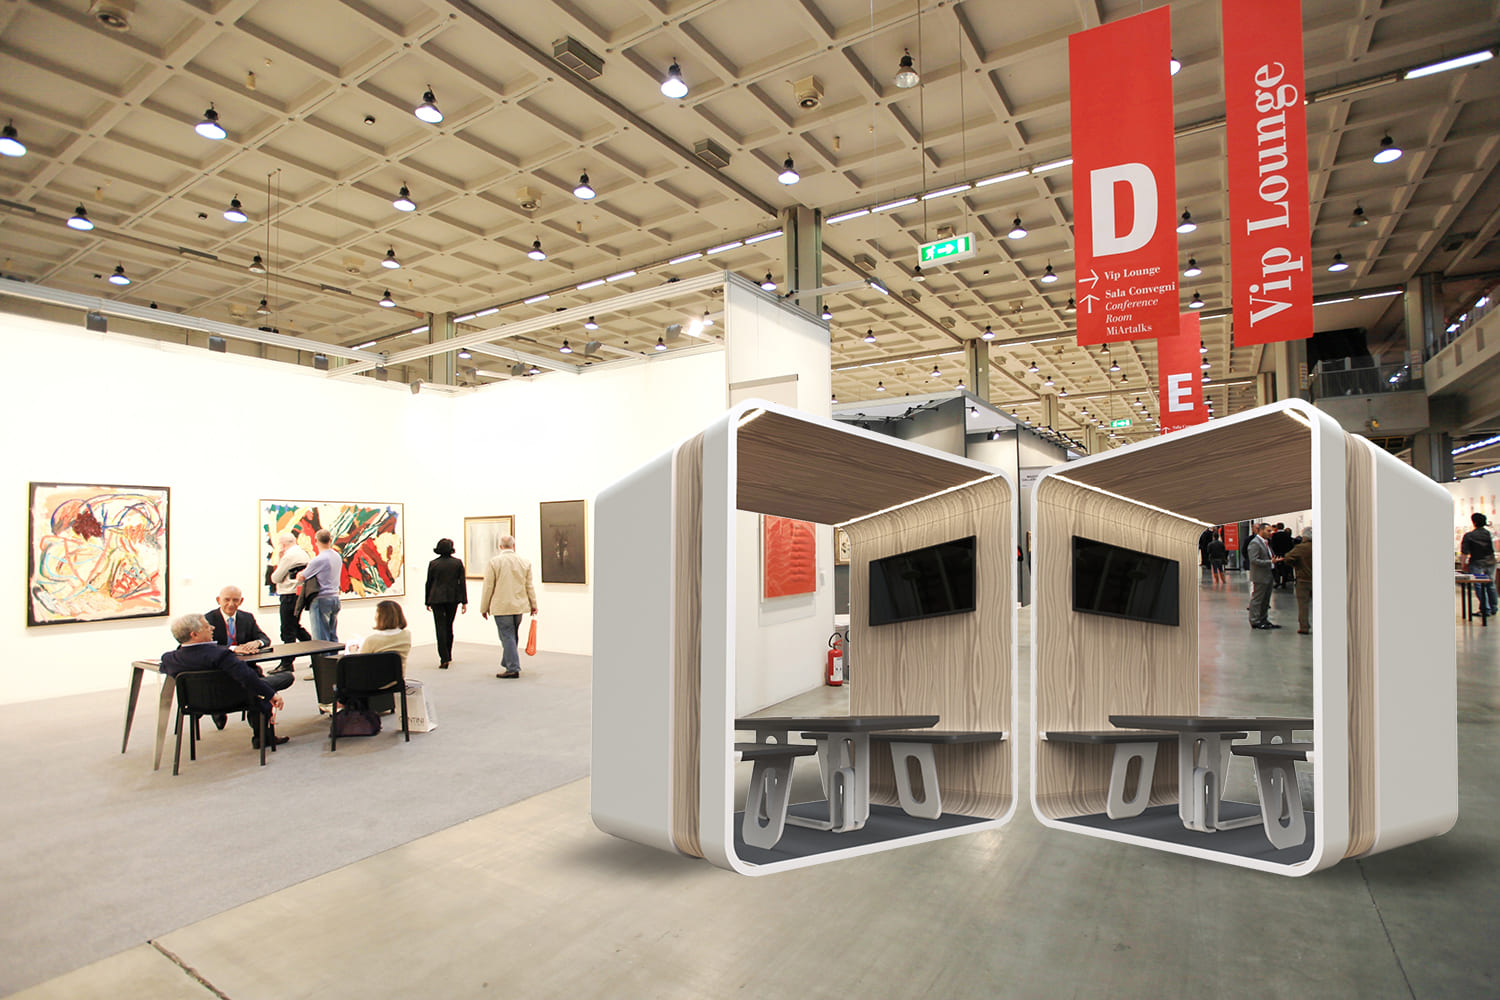 new expo with 24 work pods